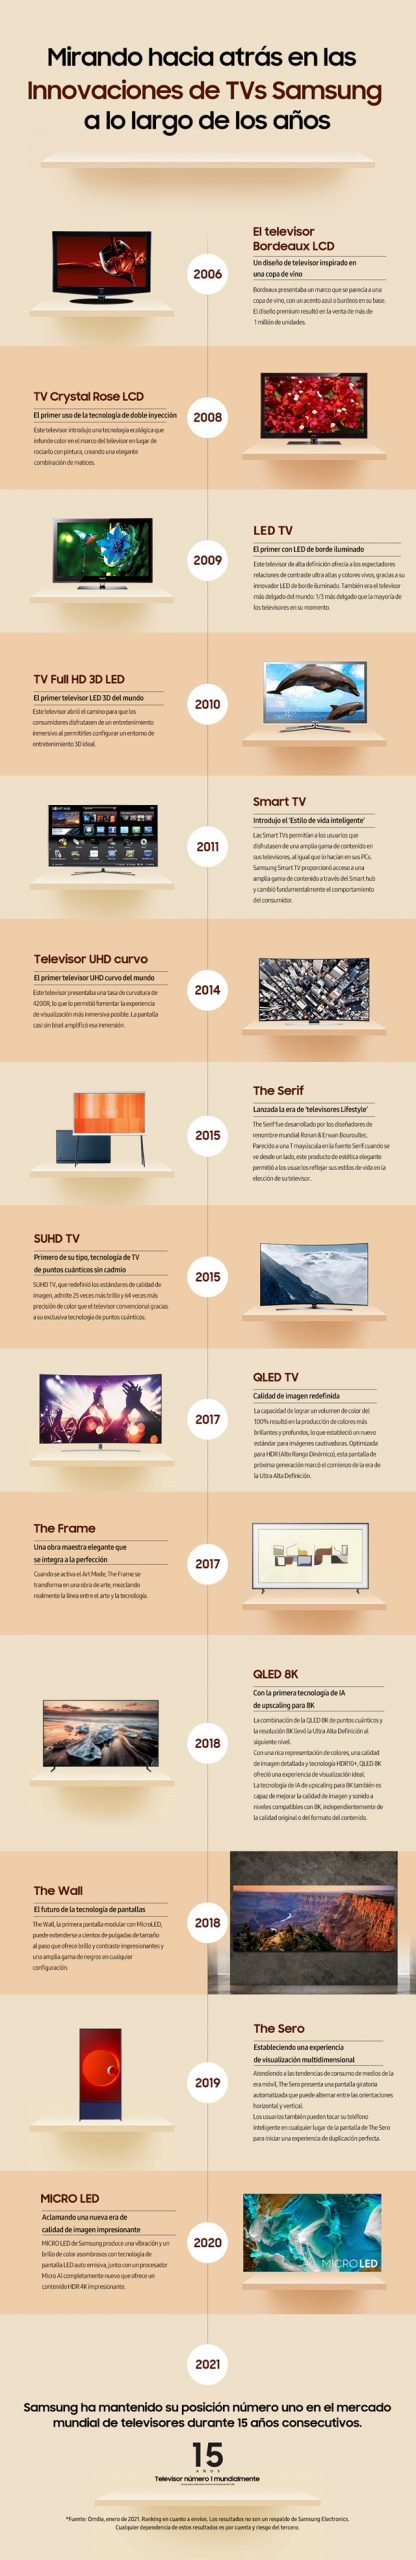 Source_Infographic_A_Timeline_of_TV_Leadership_Over_The_Years_ES